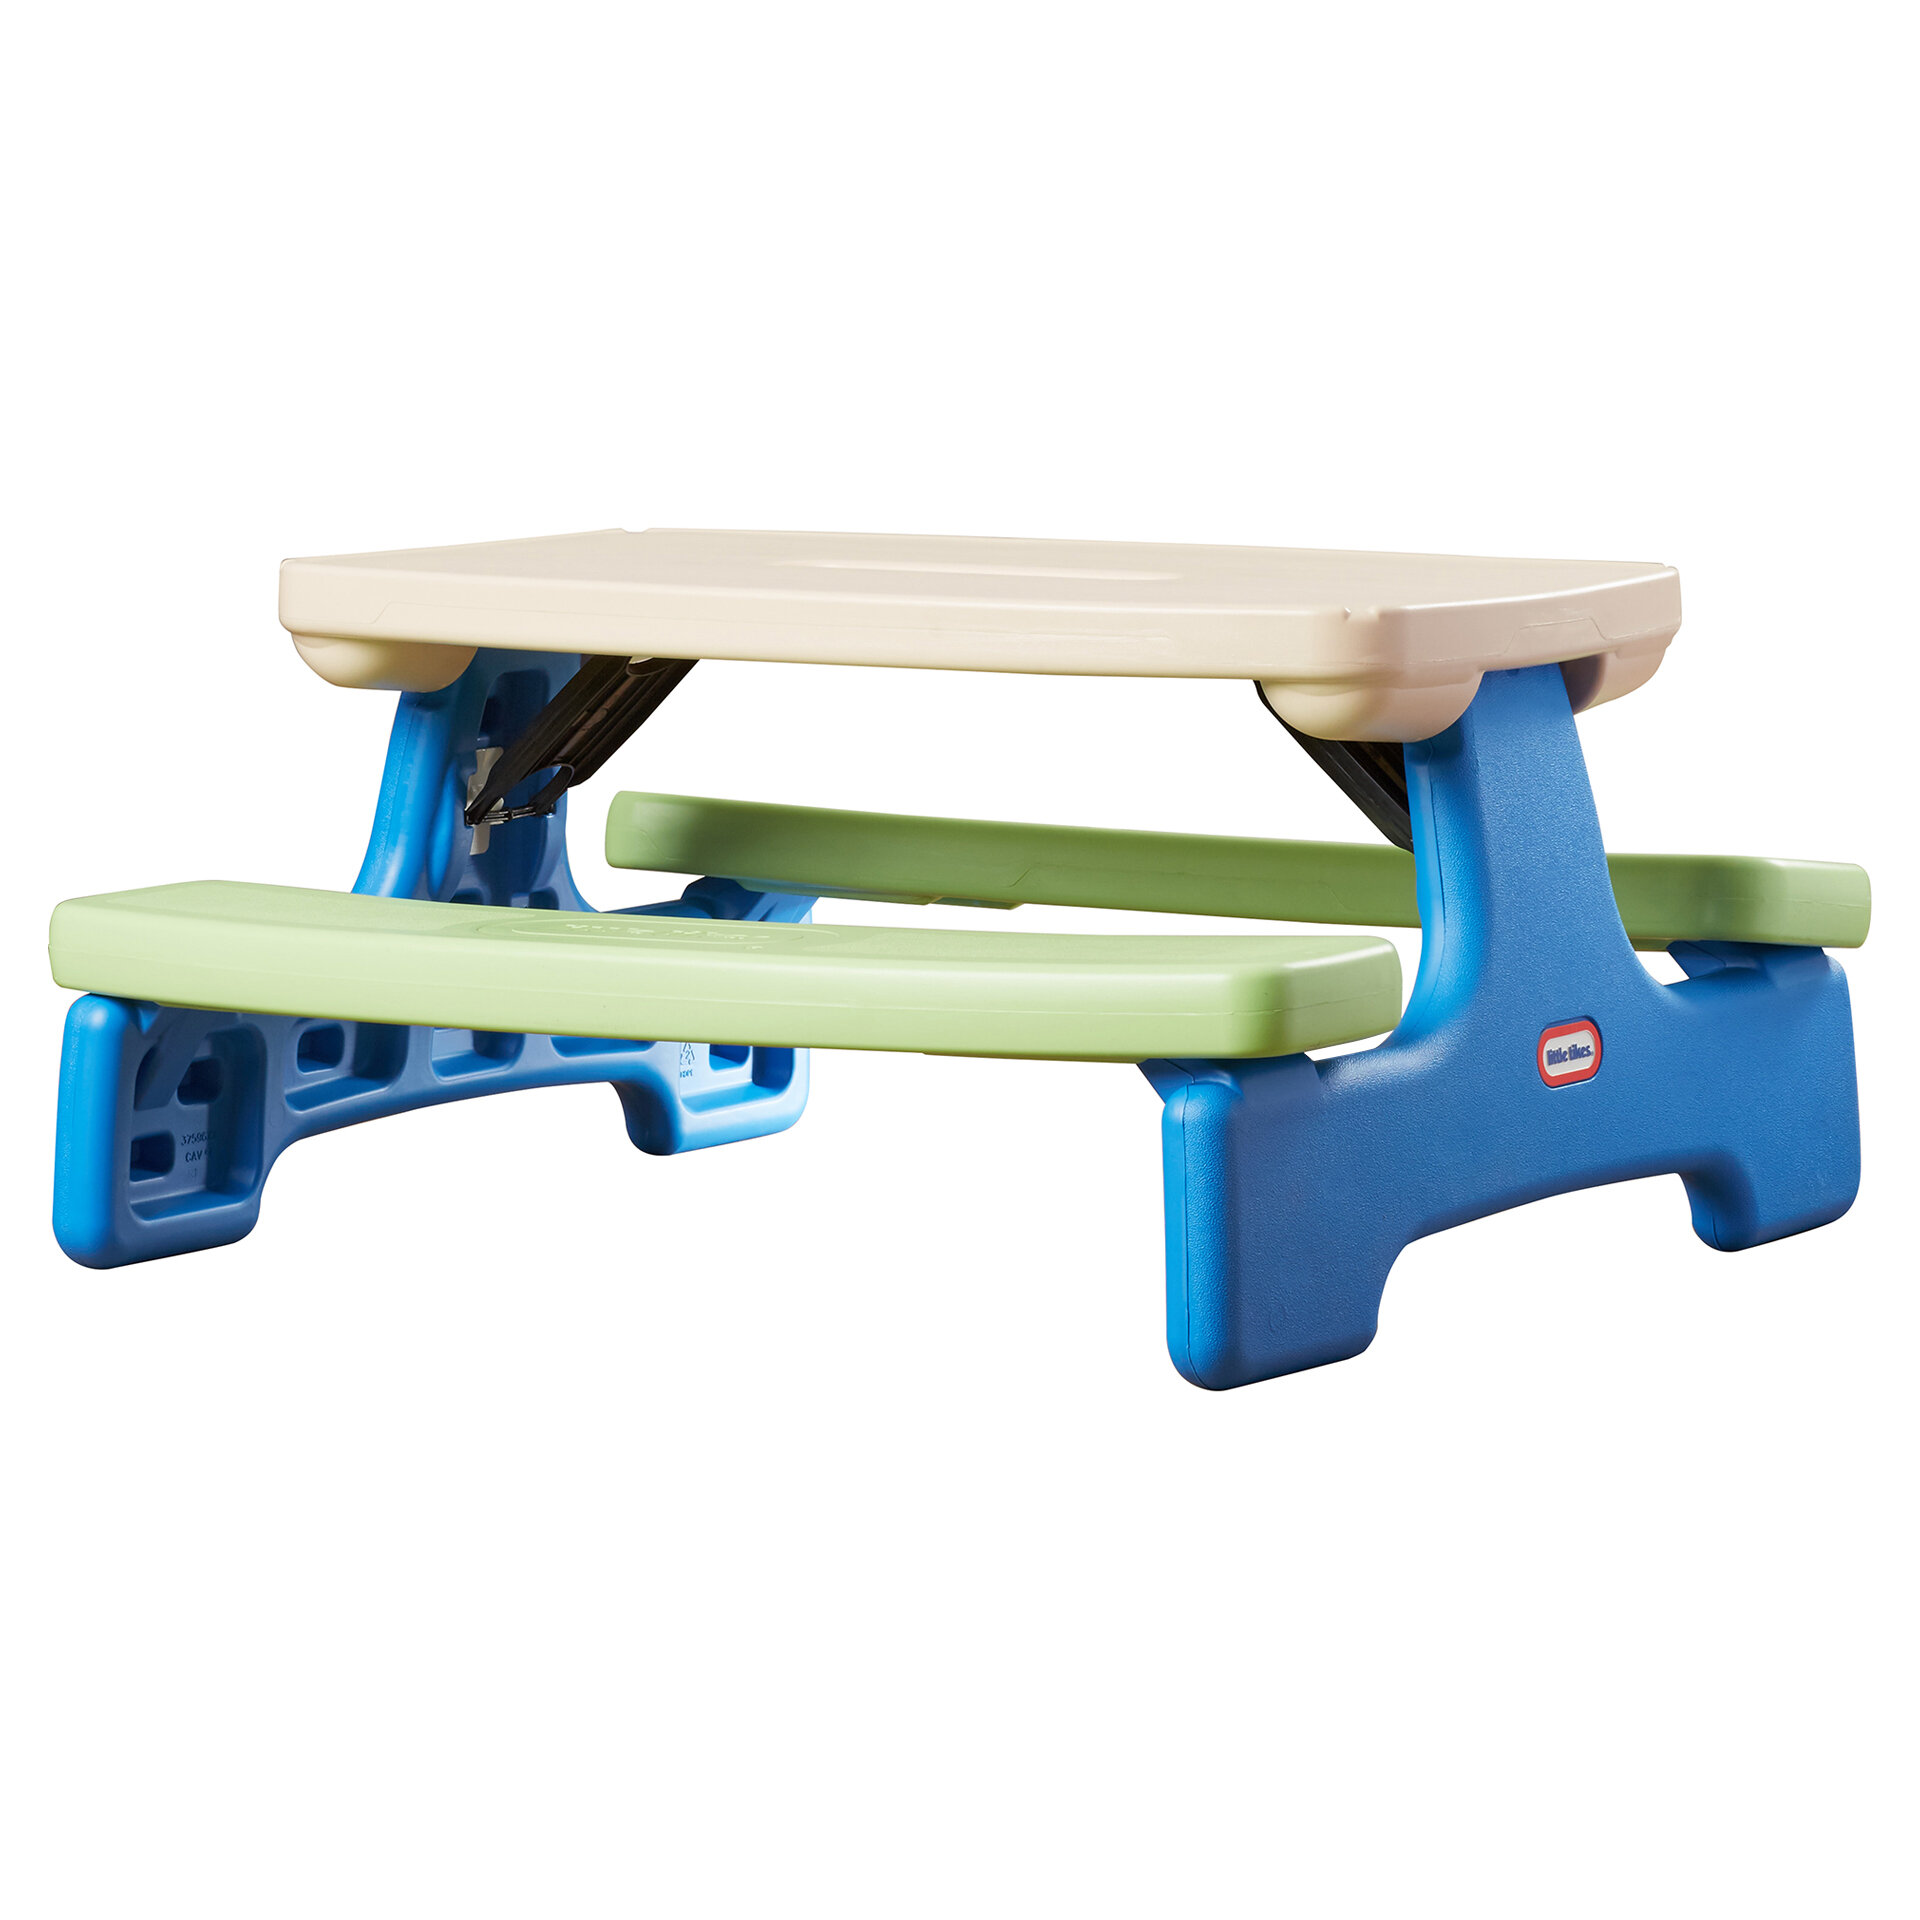 Little Tikes Easy Store Table & Reviews | Wayfair